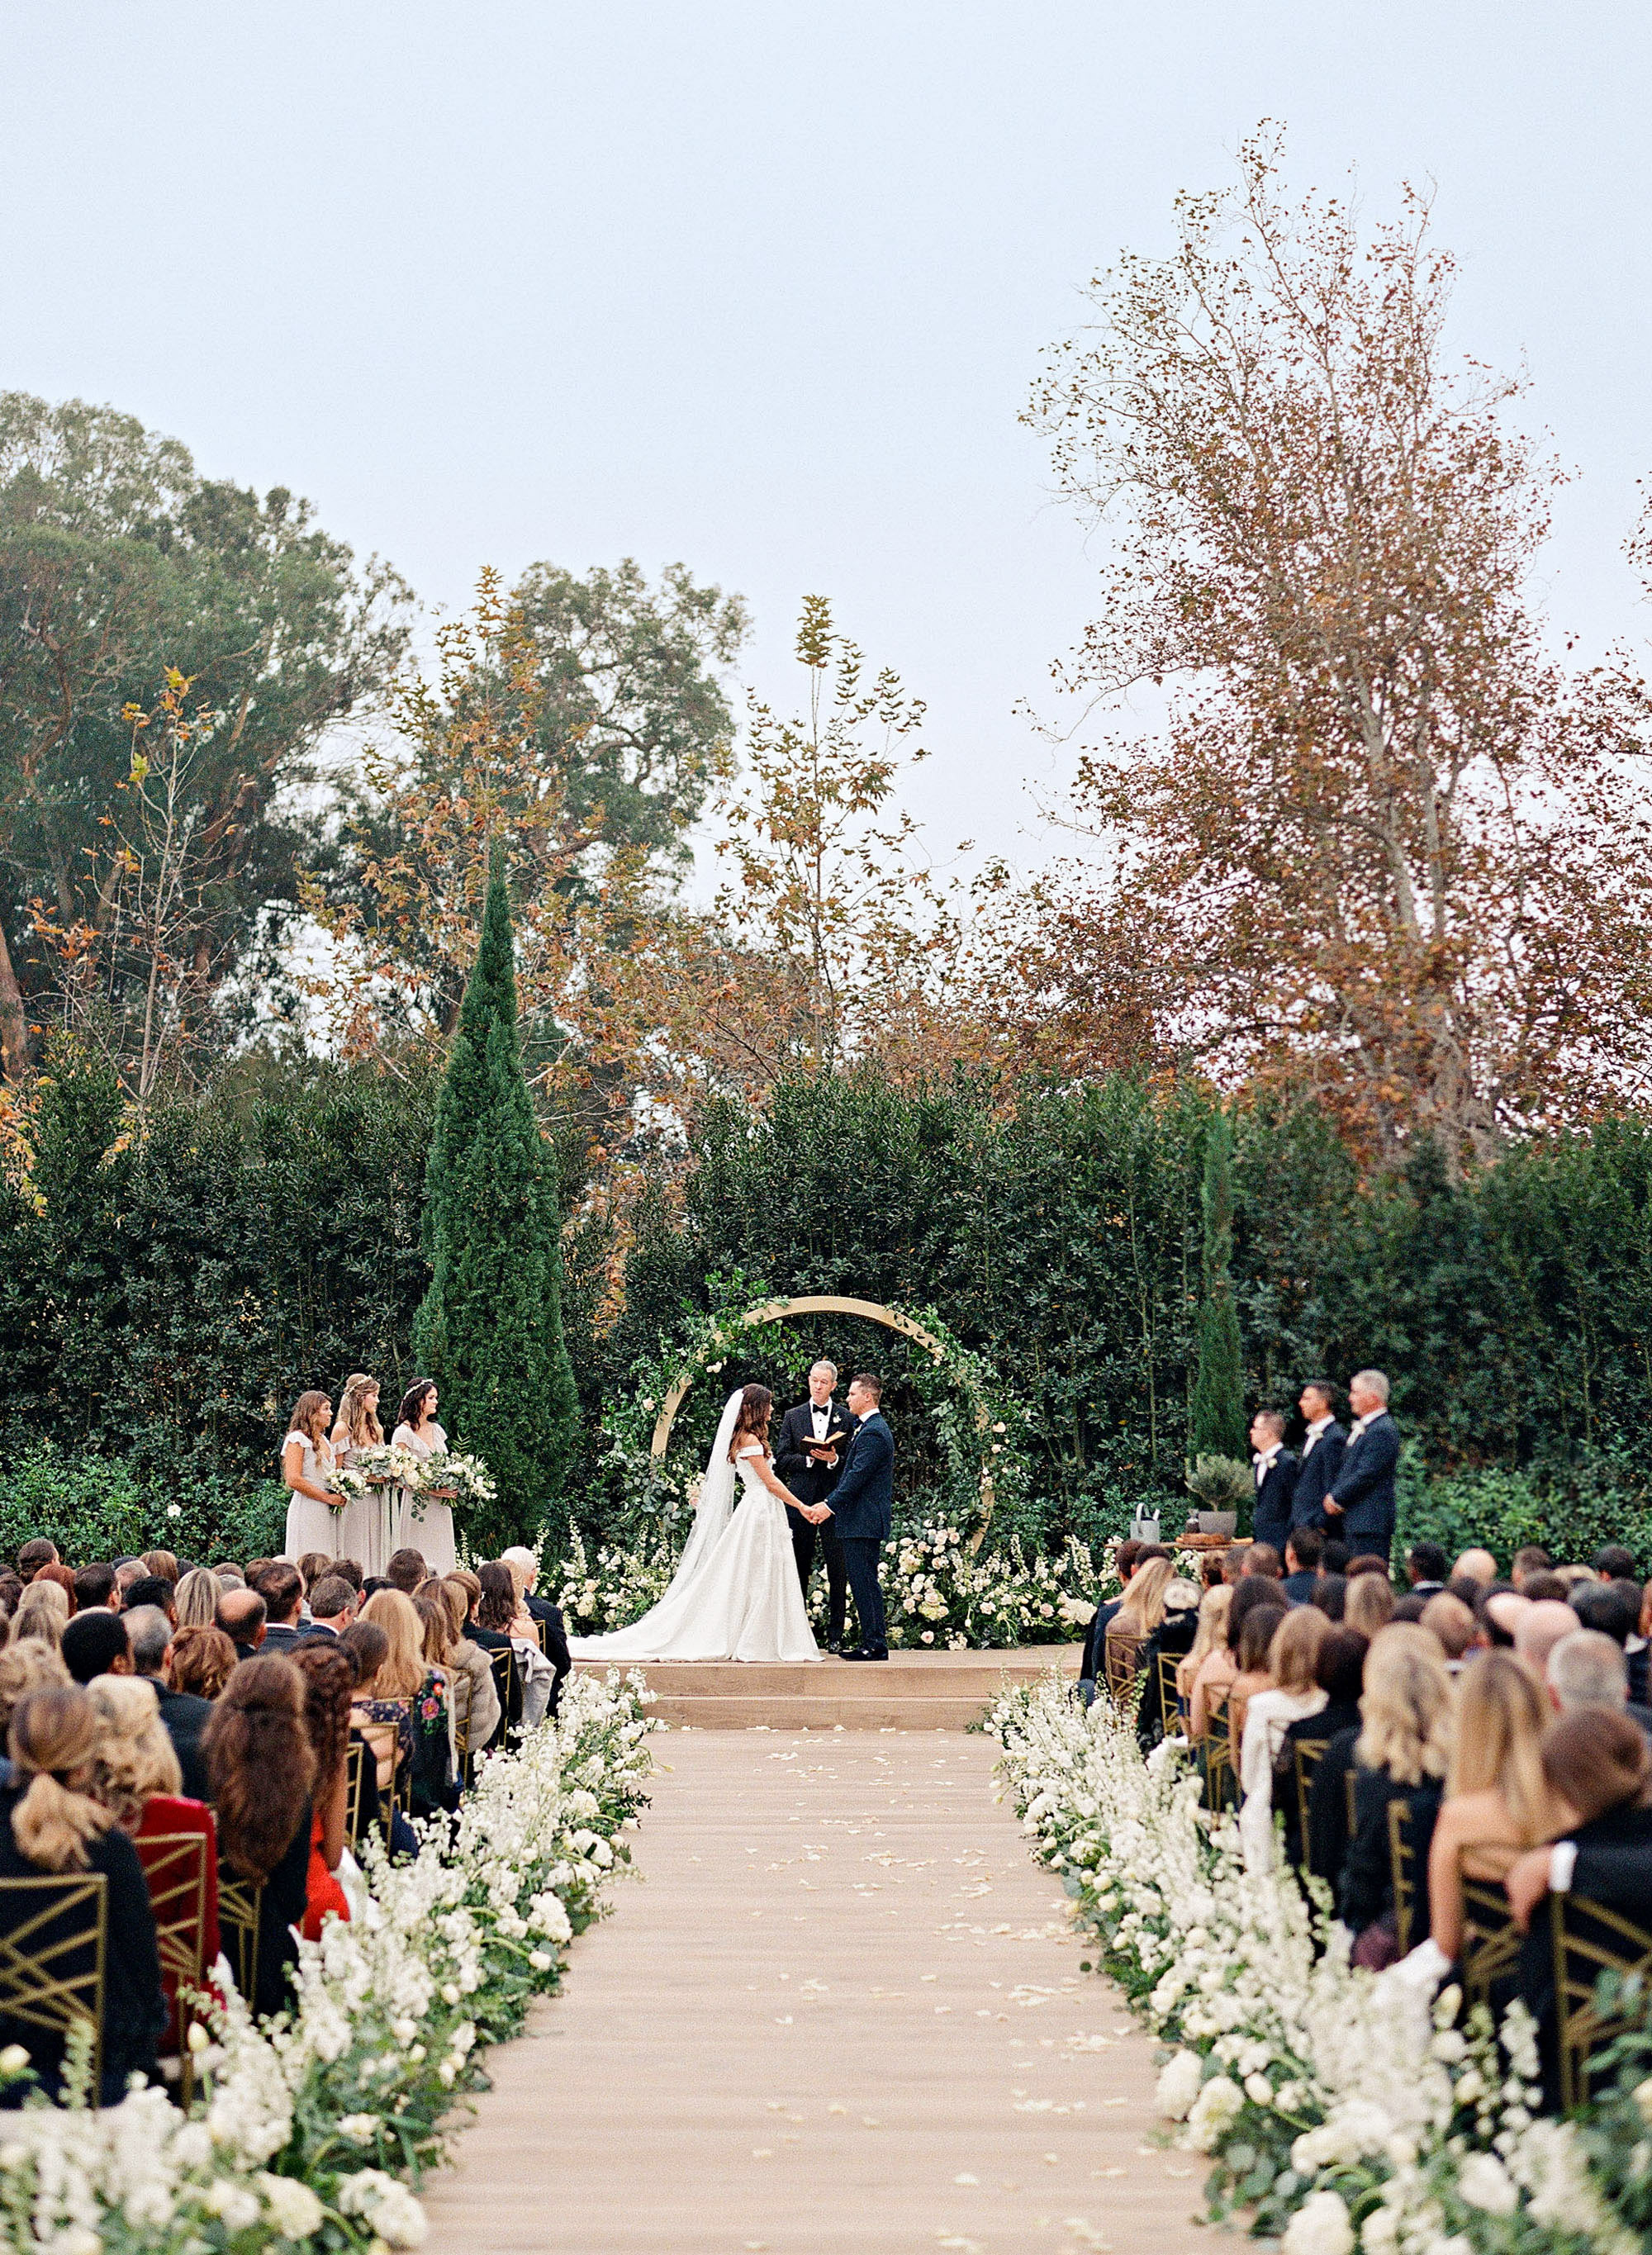 One Couple's Beautiful Winter Wedding in Santa Barbara, California